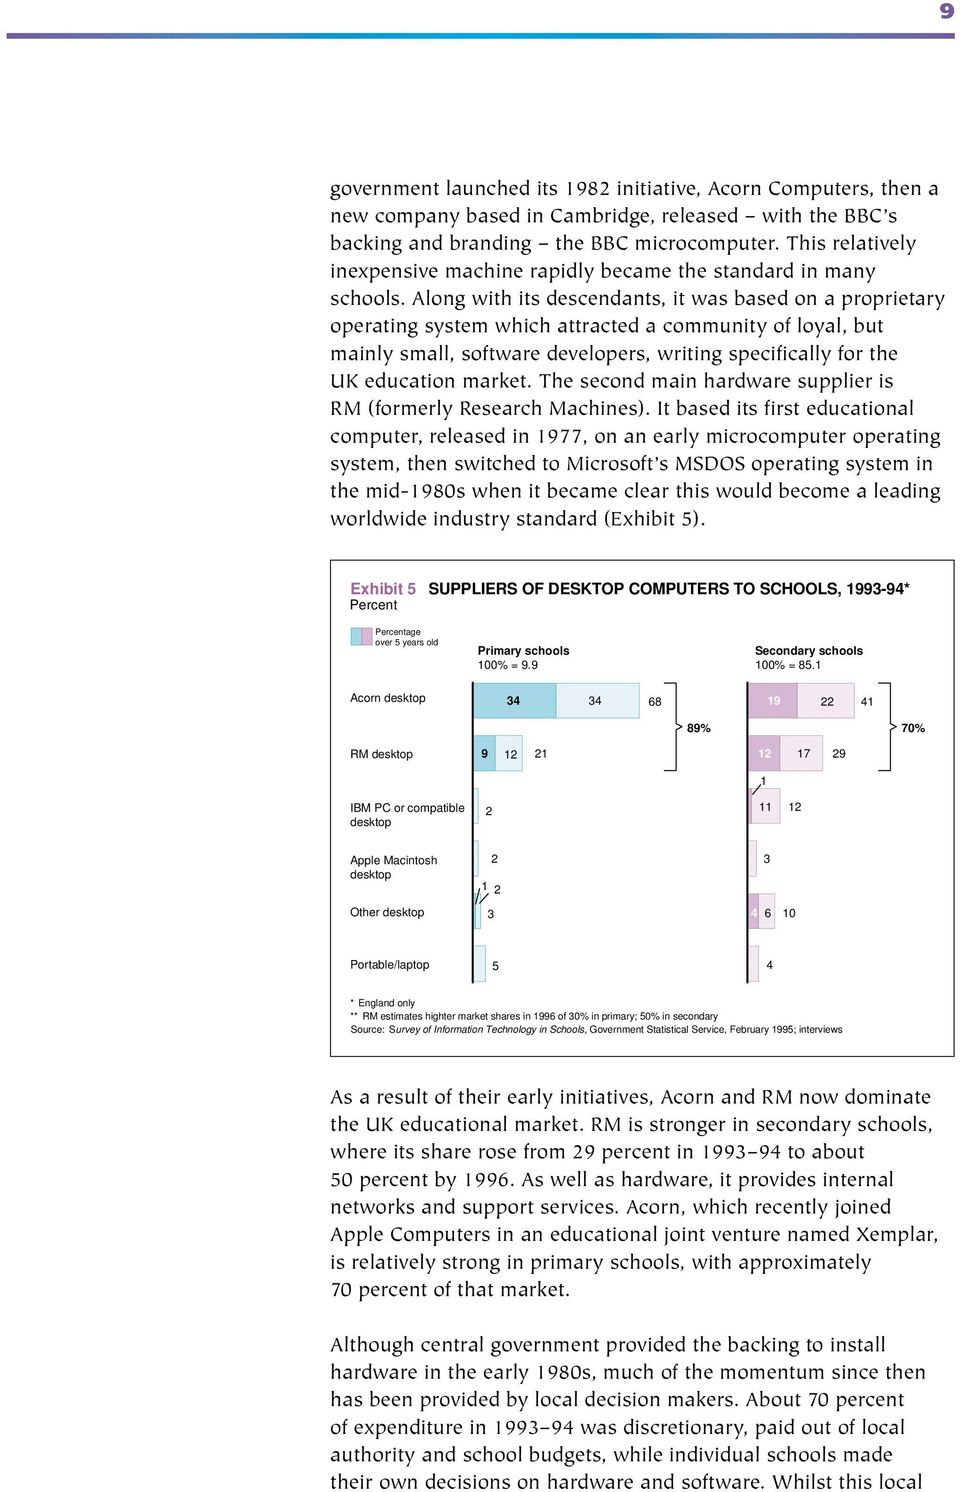 Along with its descendants, it was based on a proprietary operating system which attracted a community of loyal, but mainly small, software developers, writing specifically for the UK education